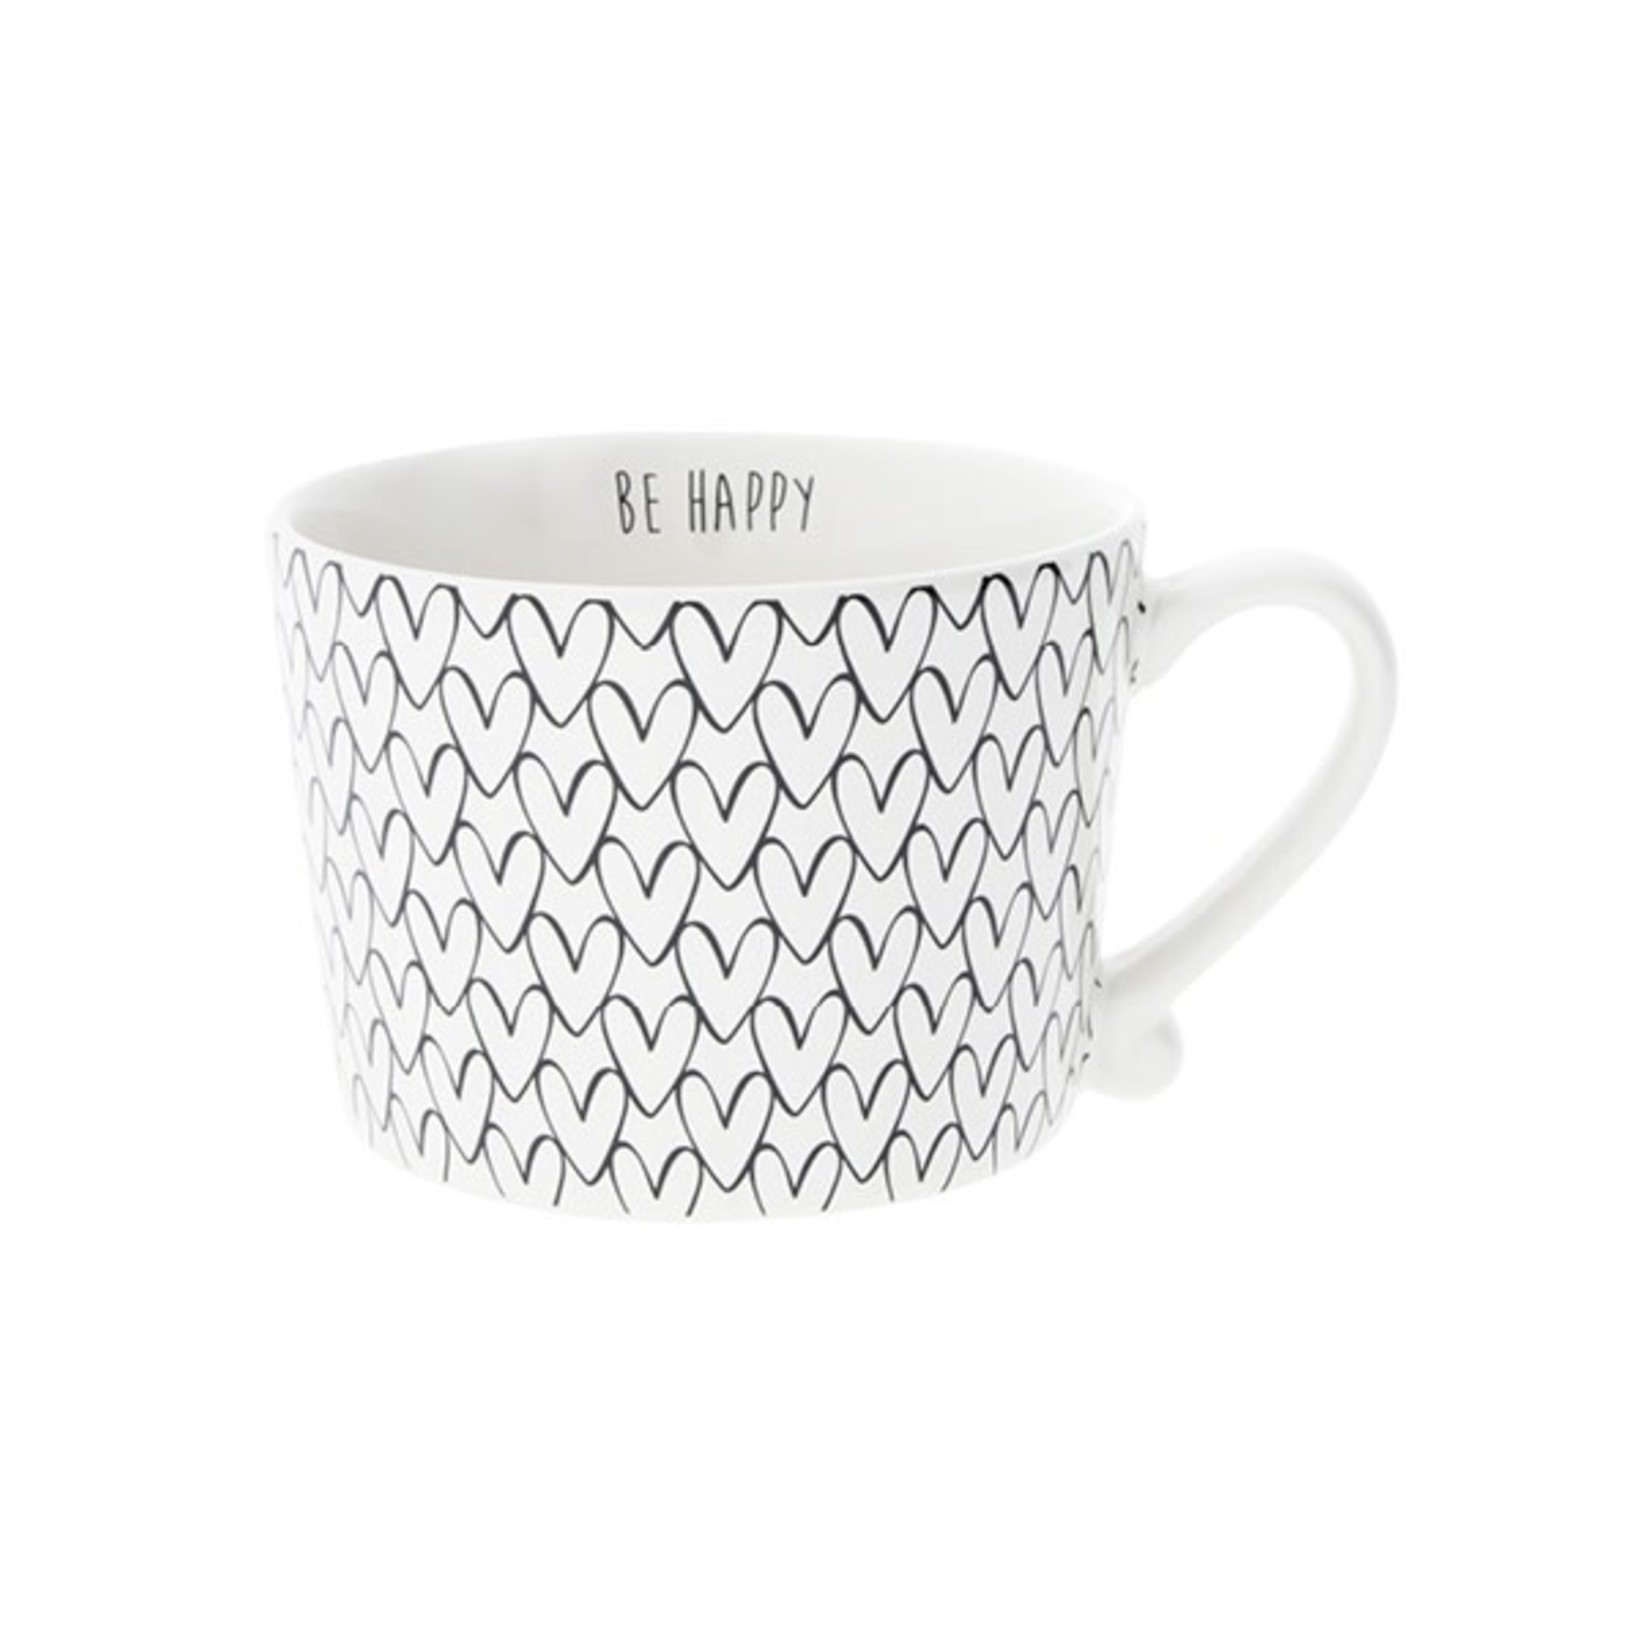 Bastion Collections Mug large White Hearts Patern in Black